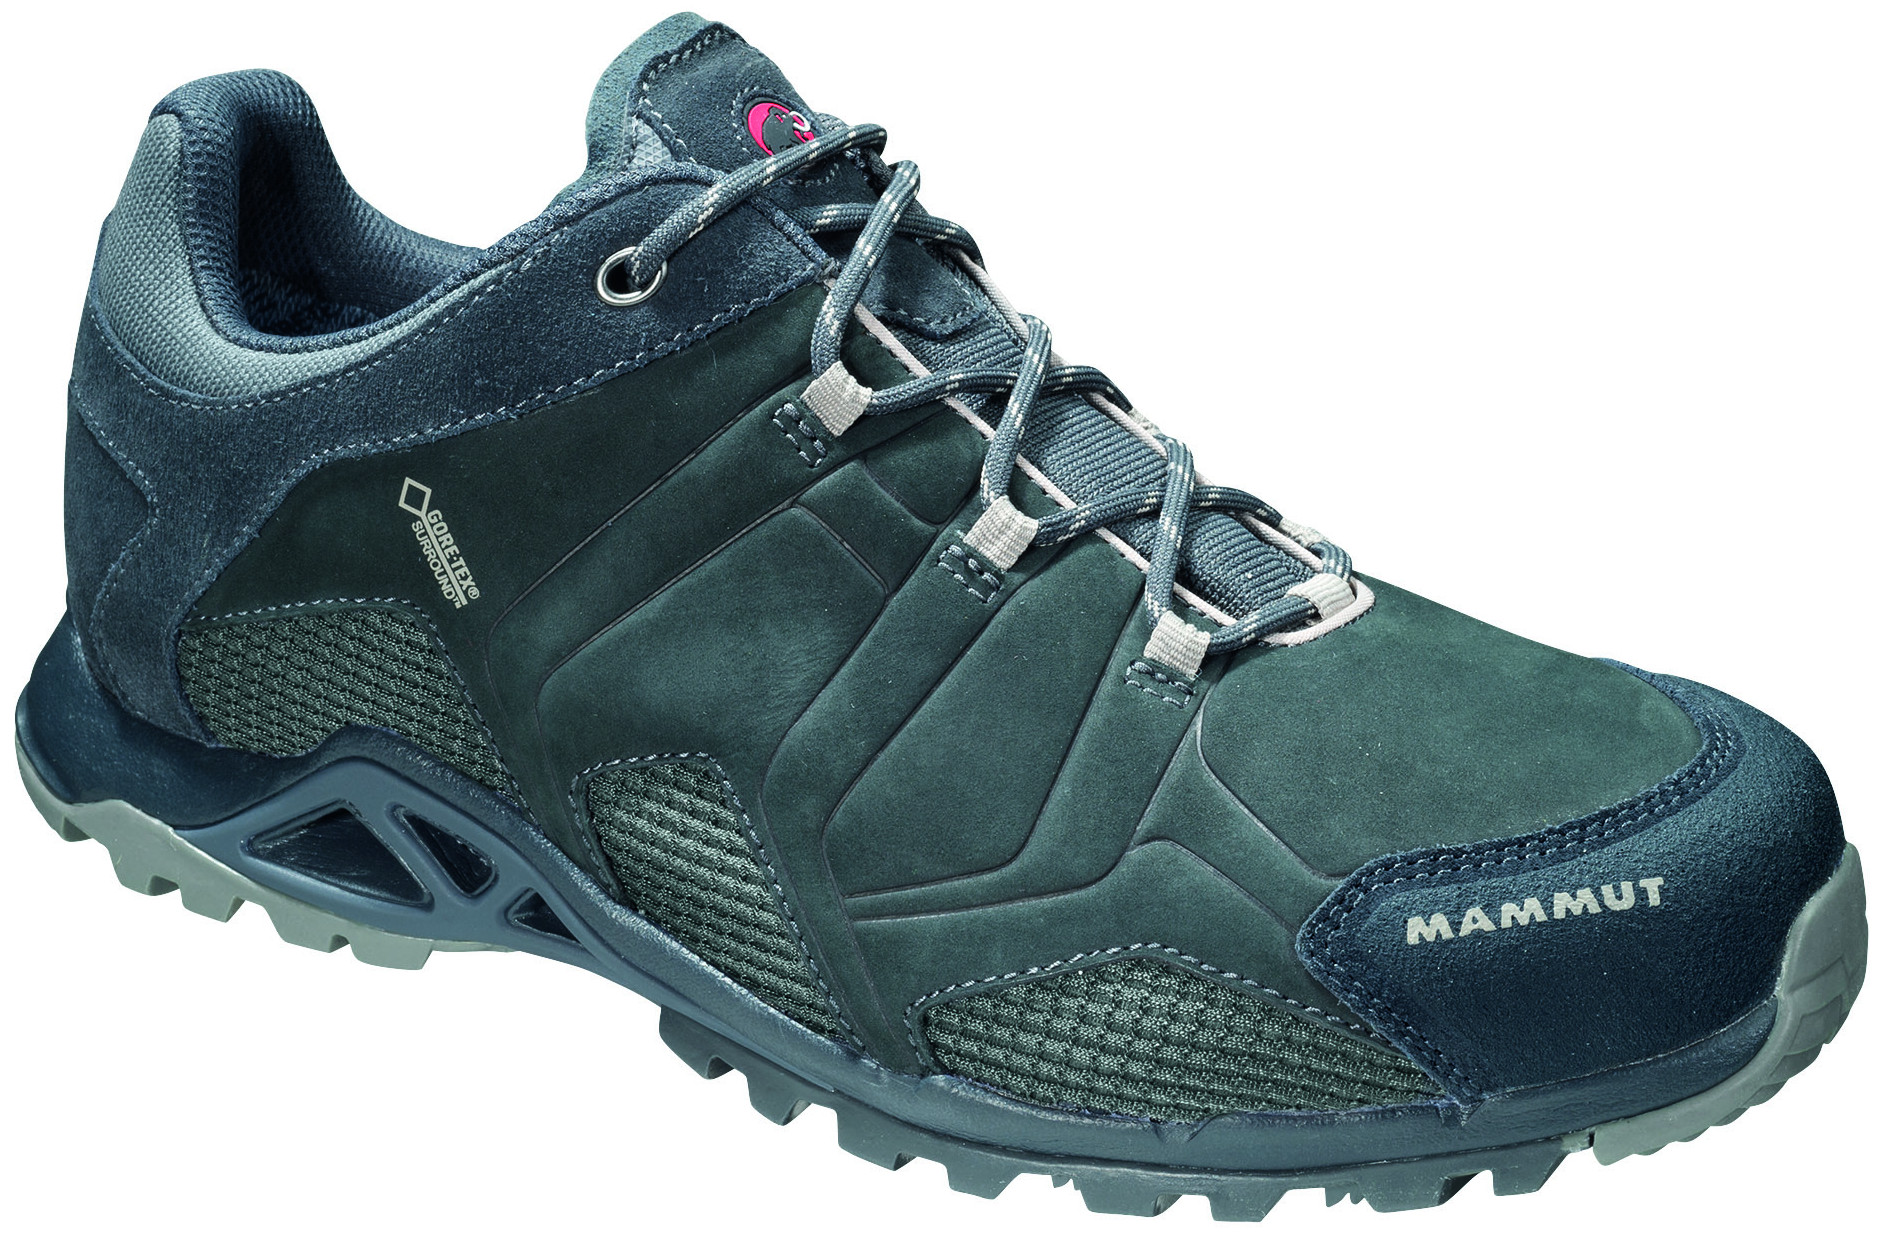 f7416afac15 Mammut Comfort Tour Low GTX Hiking Shoe - Men's